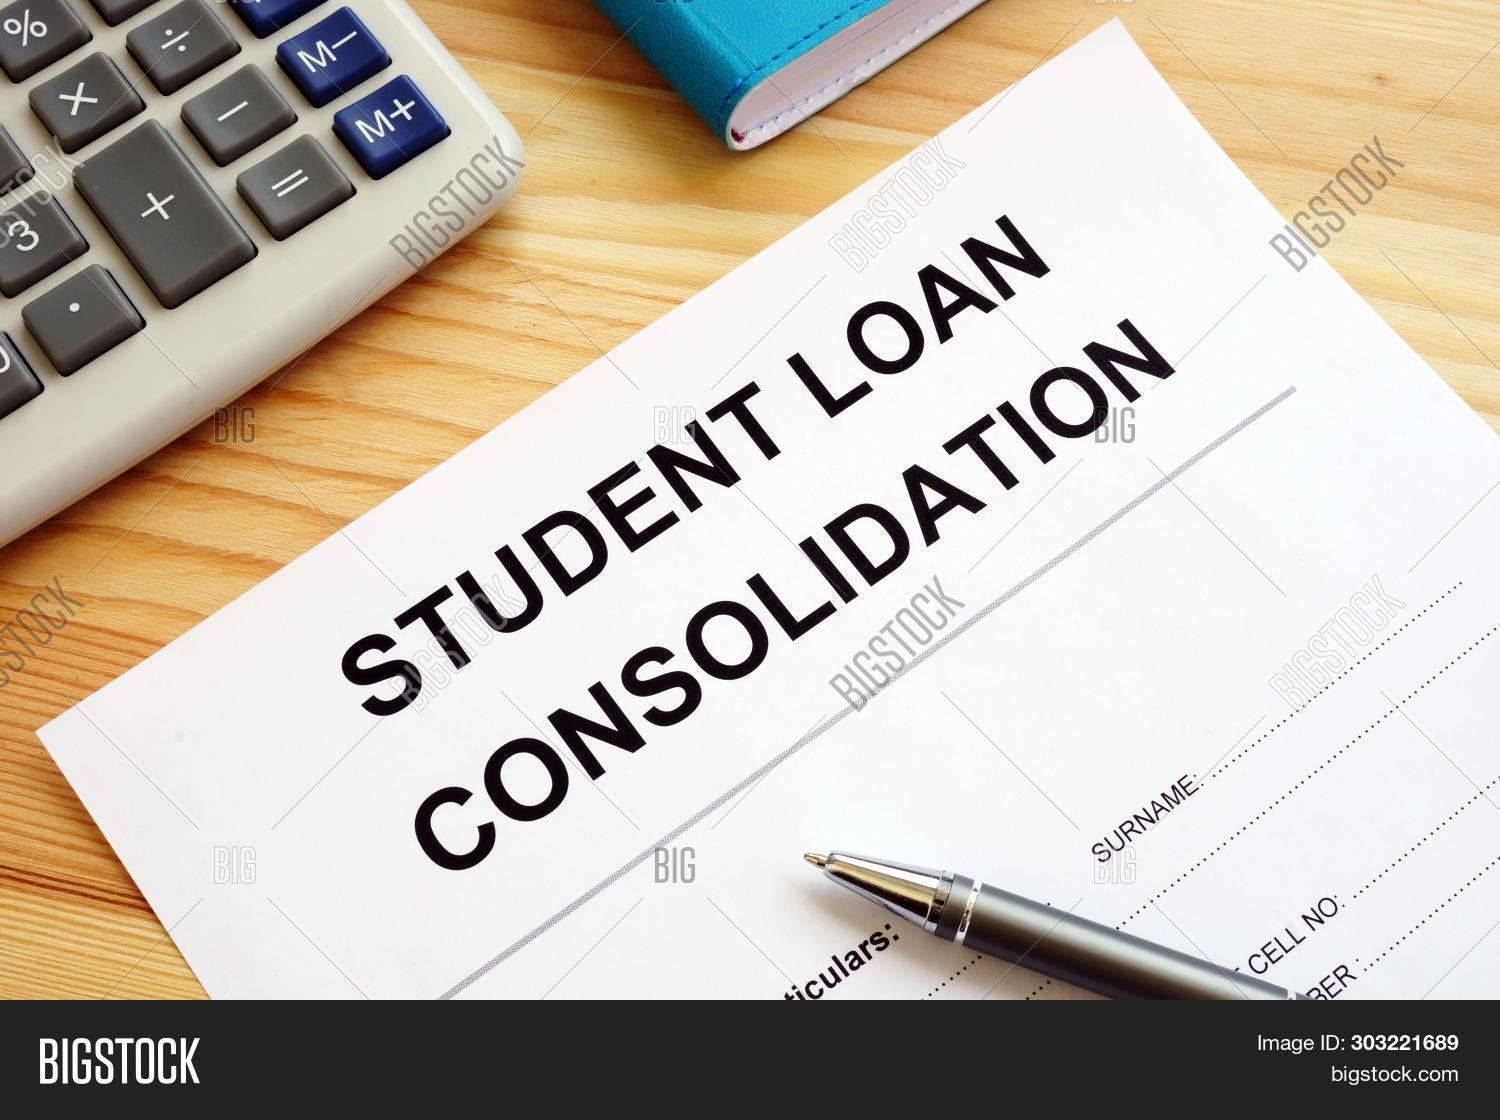 Student Loan Consolidation >> Student Loan Image Photo Free Trial Bigstock